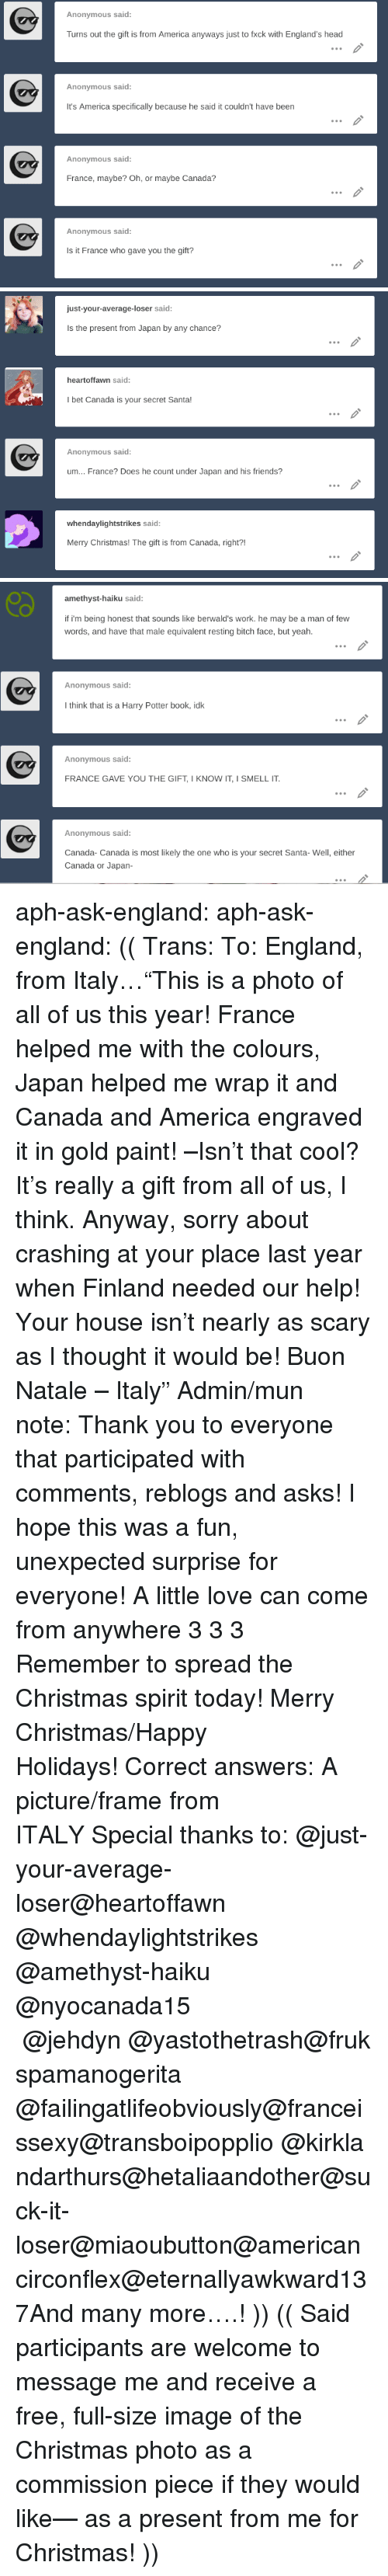 """Amethyst: Anonymous said:  Turns out the gift is from America anyways just to fxck with England's head  Anonymous said:  It's America specifically because he said it couldn't have been  Anonymous said:  France, maybe? Oh, or maybe Canada?  Anonymous said:  Is it France who gave you the gift?   just-your-average-loser said:  Is the present from Japan by any chance?  heartoffawn said:  I bet Canada is your secret Santa!  Anonymous said:  um... France? Does he count under Japan and his friends?  whendaylightstrikes said  Merry Christmas! The gift is from Canada, right?!   amethyst-haiku said:  if i'm being honest that sounds like berwald's work. he may be a man of few  words, and have that male equivalent resting bitch face, but yeah.  Anonymous said  I think that is a Harry Potter book, idk  Anonymous said:  FRANCE GAVE YOU THE GIFT, I KNOW IT, I SMELL IT  Anonymous said:  Canada- Canada is most likely the one who is your secret Santa- Well, either  Canada or Japan- aph-ask-england:  aph-ask-england: (( Trans:To: England, from Italy…""""This is a photo of all of us this year! France helped me with the colours, Japan helped me wrap it and Canada and America engraved it in gold paint! –Isn't that cool? It's really a gift from all of us, I think. Anyway, sorry about crashing at your place last year when Finland needed our help! Your house isn't nearly as scary as I thought it would be!Buon Natale – Italy""""Admin/mun note:Thank you to everyone that participated with comments, reblogs and asks! I hope this was a fun, unexpected surprise for everyone! A little love can come from anywhere 3 3 3 Remember to spread the Christmas spirit today! Merry Christmas/Happy Holidays!Correct answers: A picture/frame from ITALYSpecial thanks to:@just-your-average-loser@heartoffawn @whendaylightstrikes @amethyst-haiku @nyocanada15 @jehdyn@yastothetrash@frukspamanogerita @failingatlifeobviously@franceissexy@transboipopplio@kirklandarthurs@hetaliaandother@suck-it-loser@miaoubutton@americancirconf"""